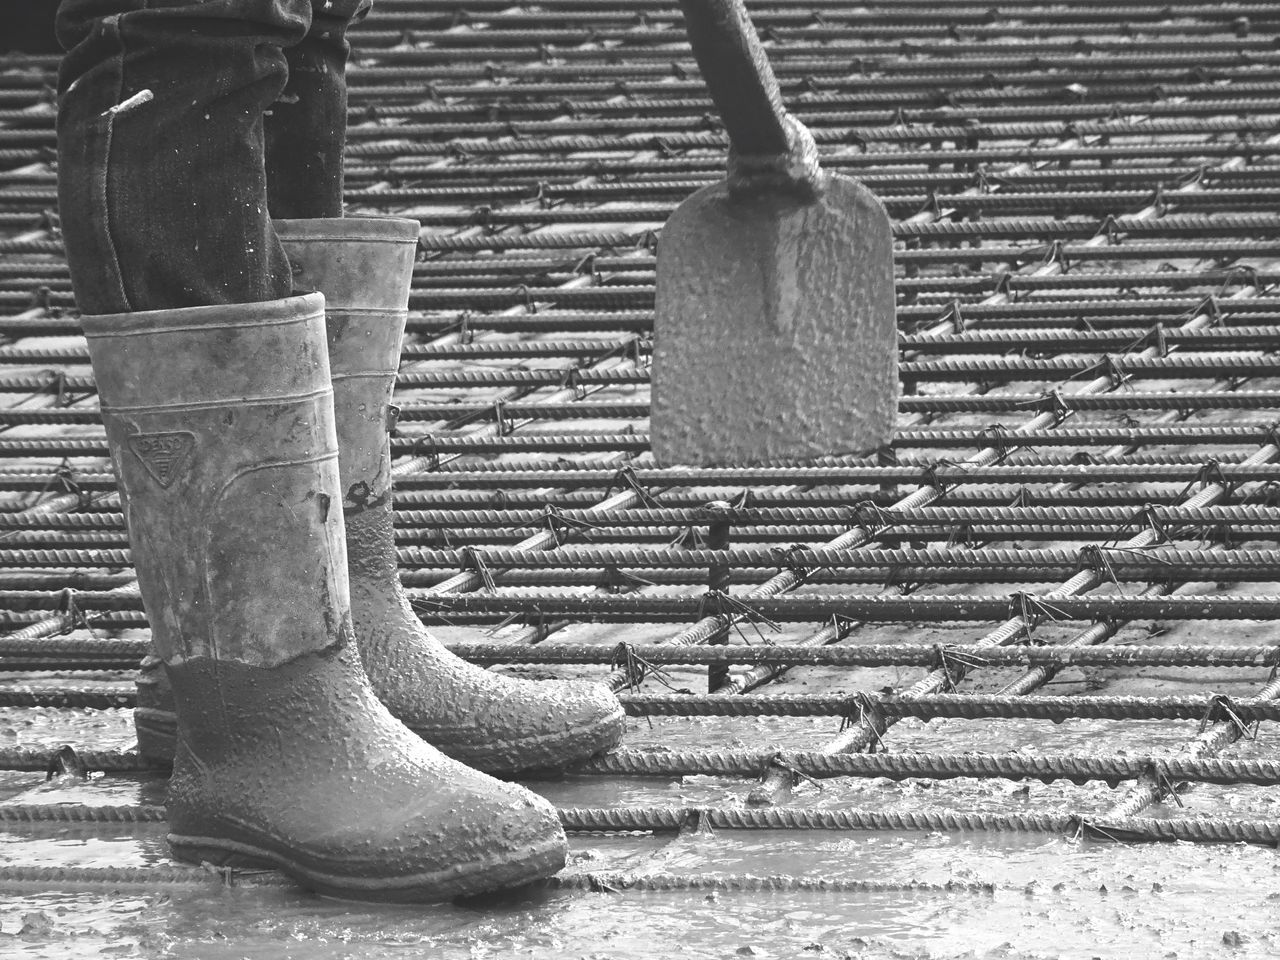 Outdoors Day No People Close-up Low Section Boots Protection Worker Concrete Floor Standing Manual Worker Construction Site